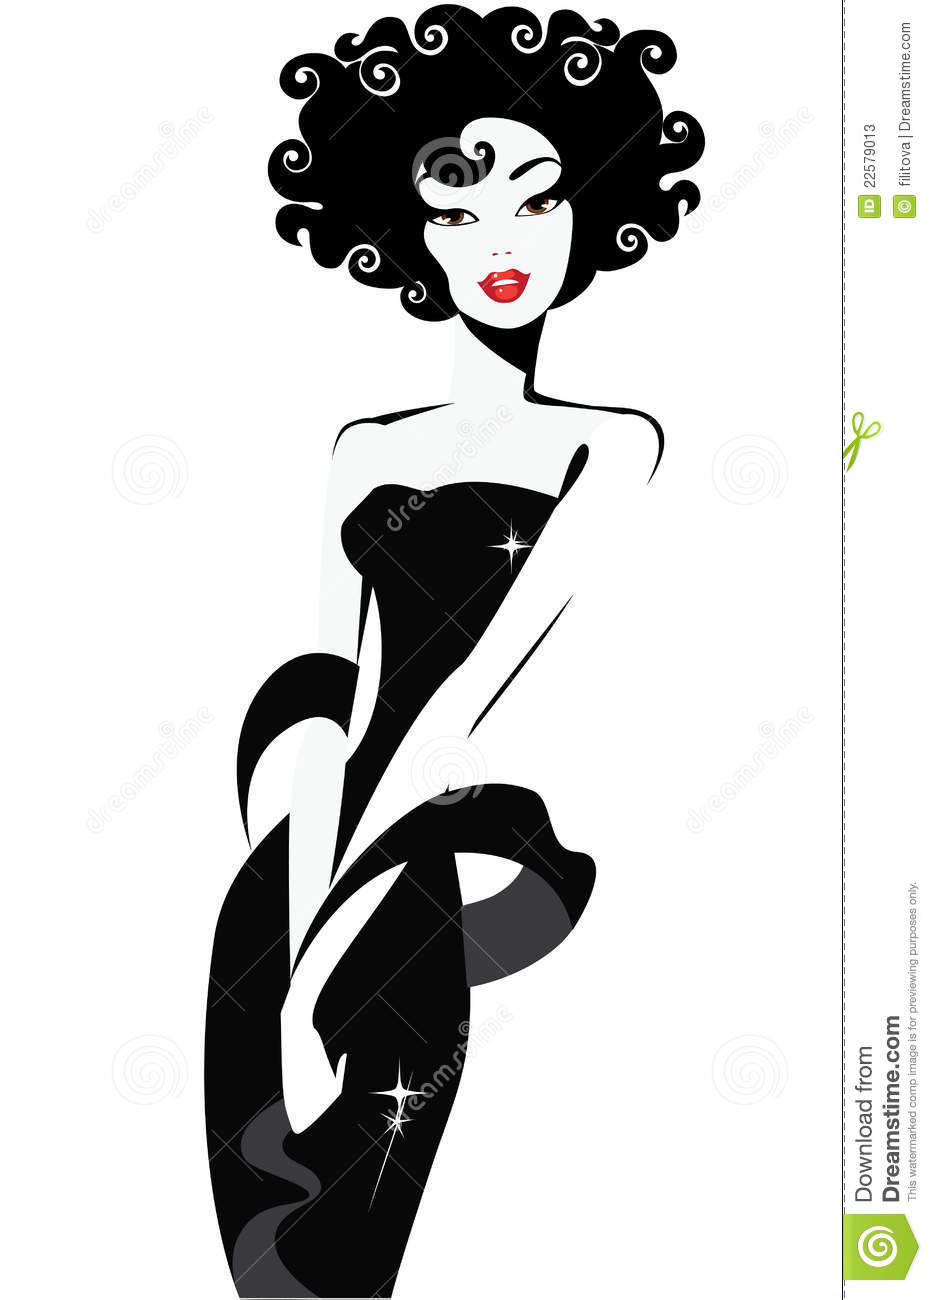 Black And White Illustration Of A Elegant Woman Stock Photos   Image